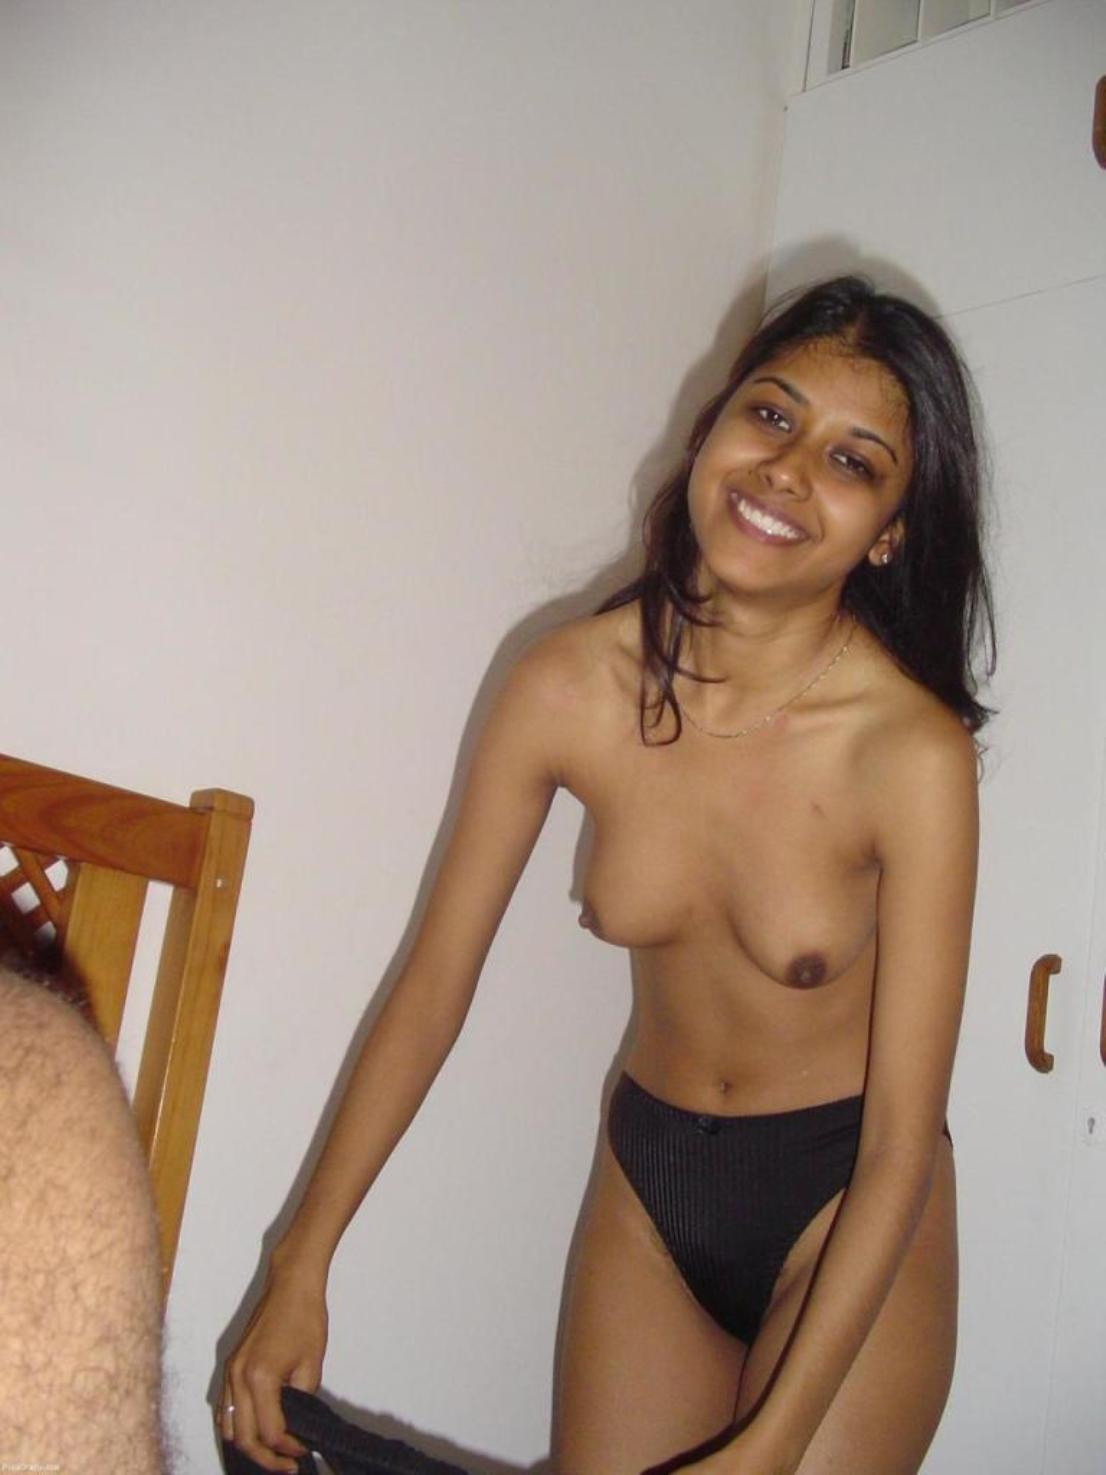 Indian Desi Aunty And Bhabhi Nude Photo Hot Bengali -4670